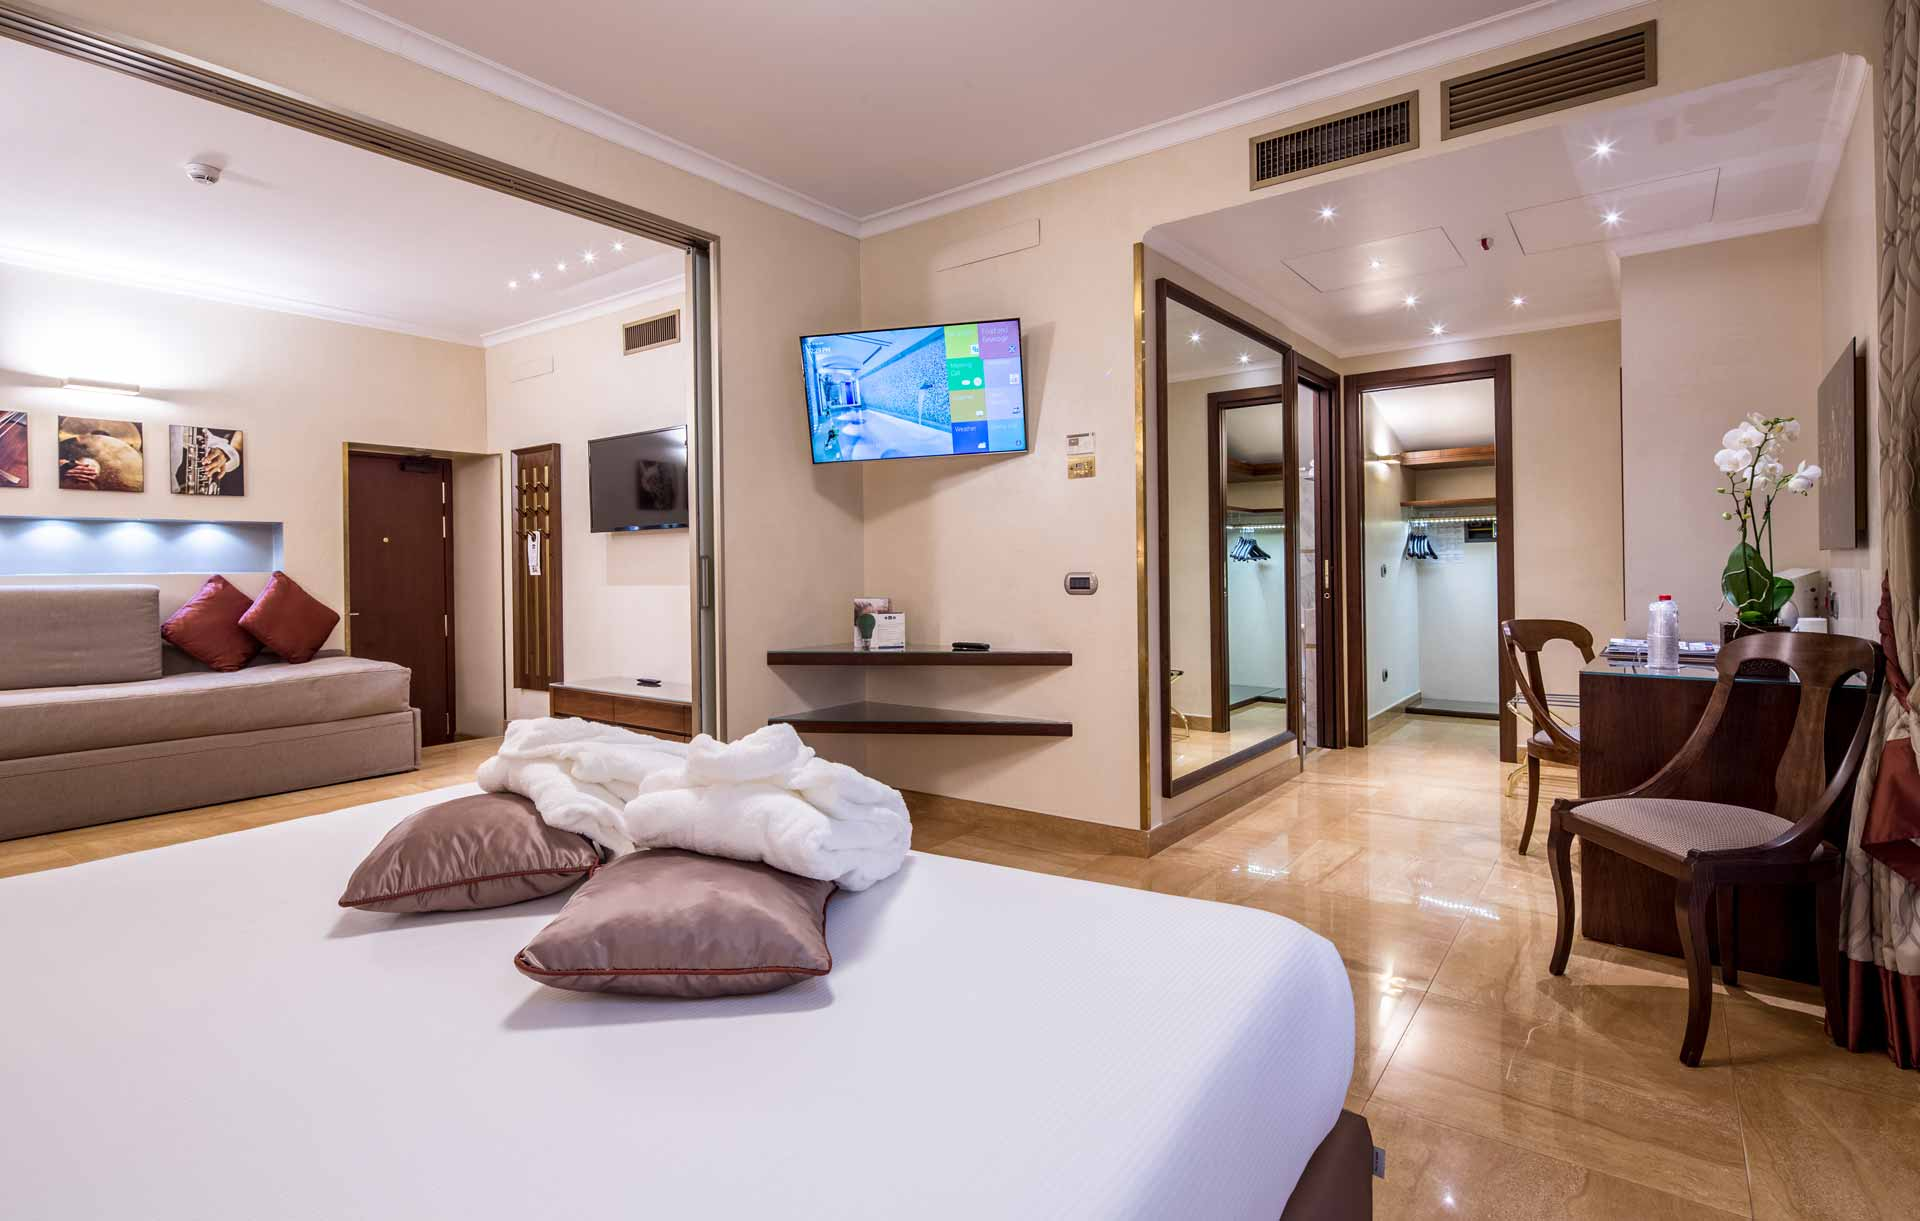 Hotel with Suites in Milan  Enjoy our Luxury Suites in